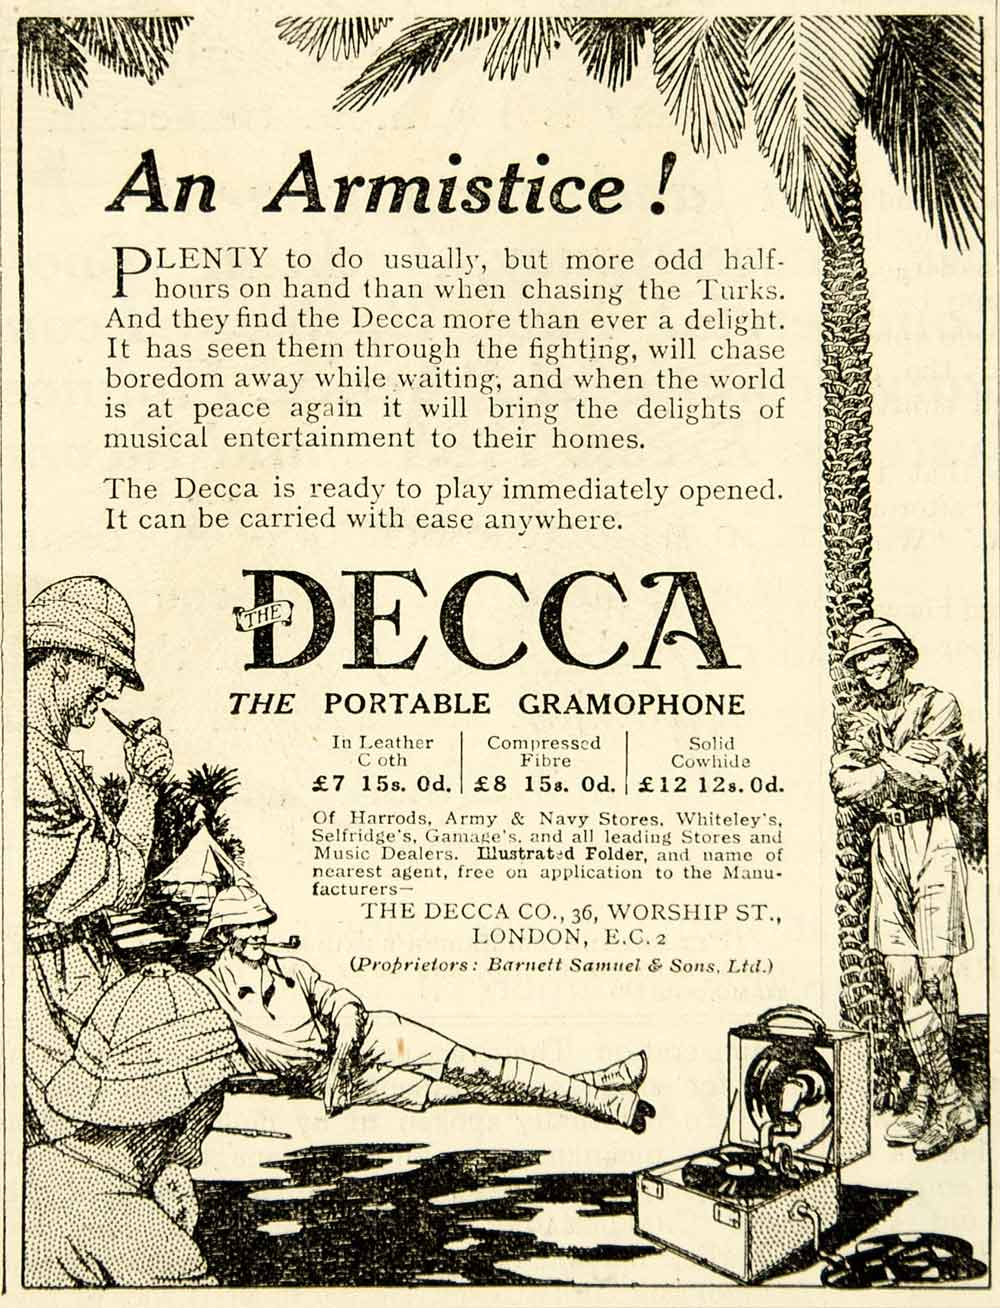 1918 Ad World War I Decca Portable Gramophone Phonograph British Soldiers Advert